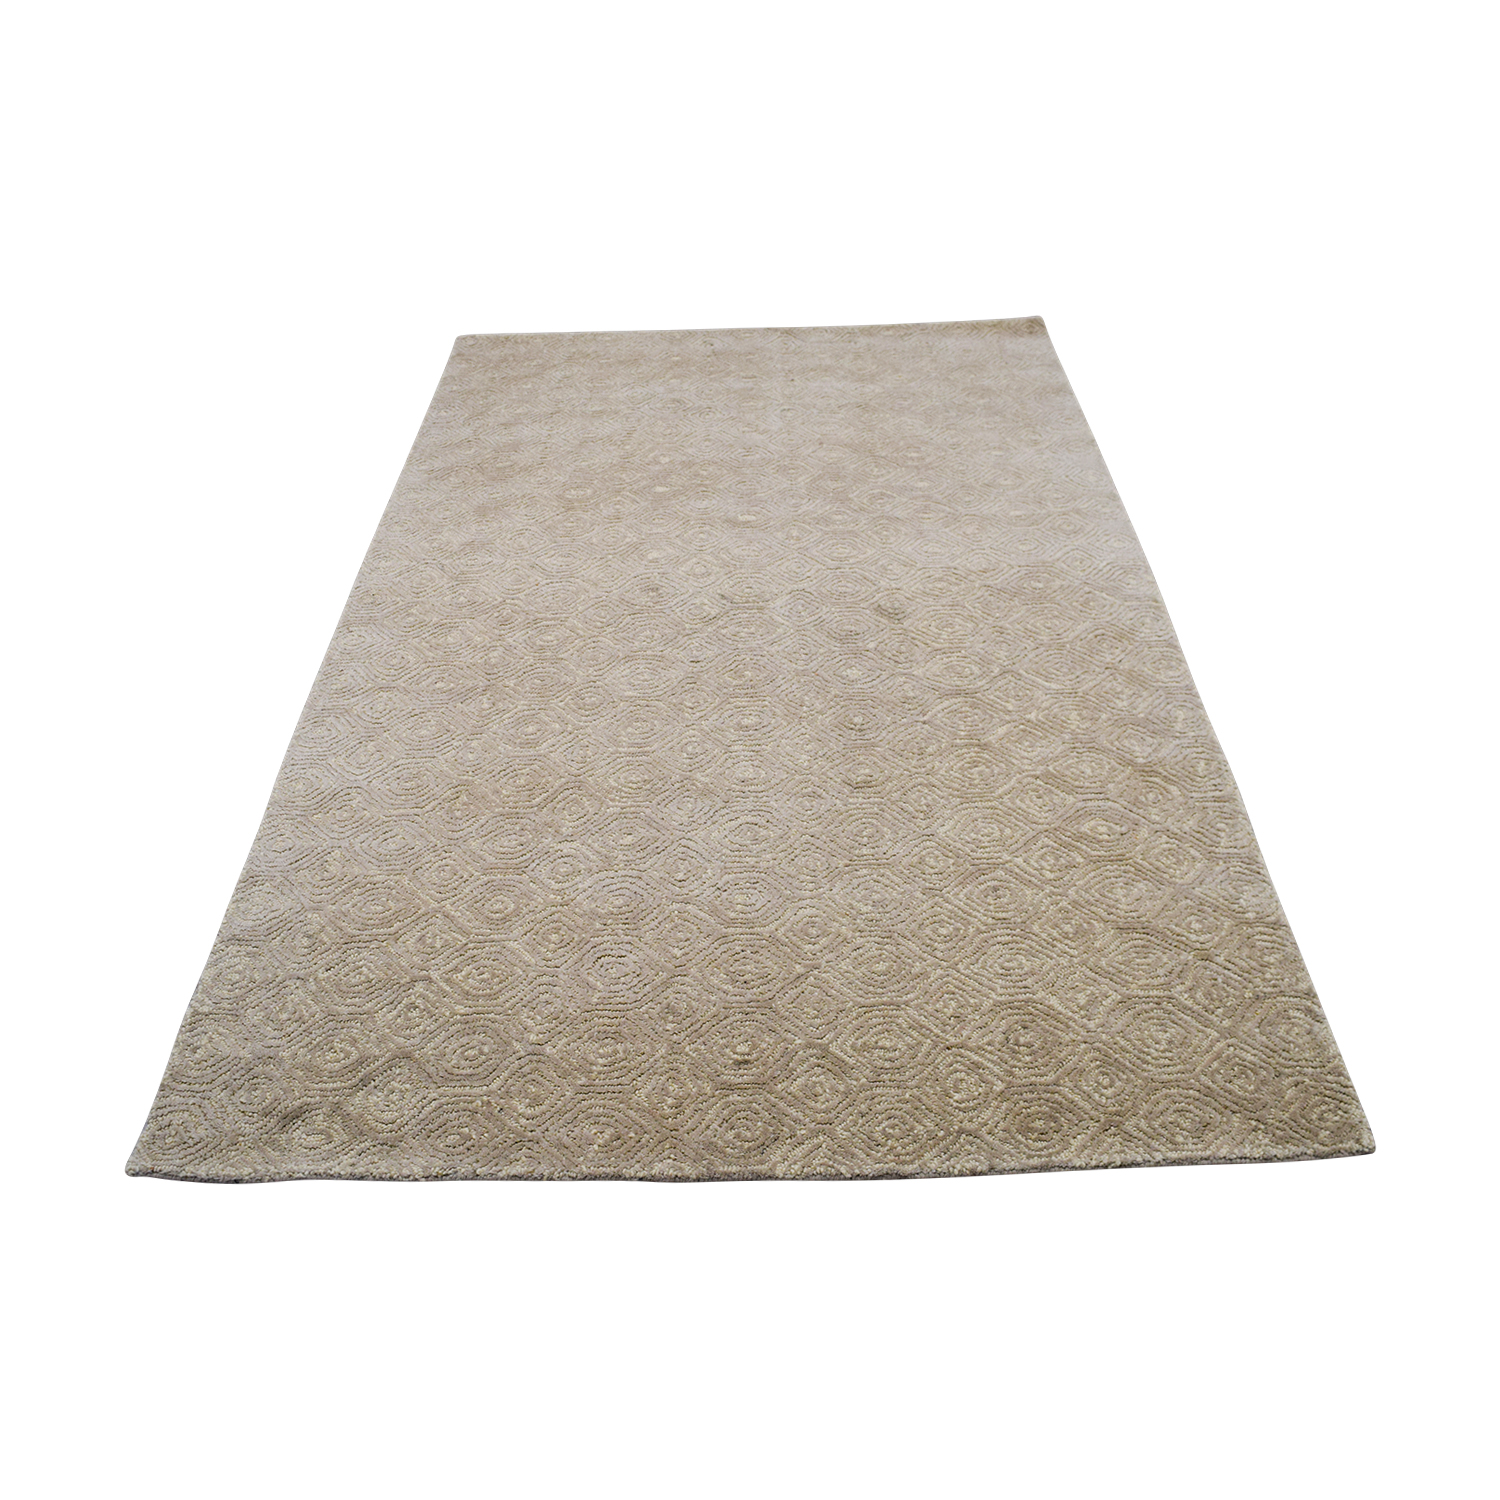 Obeetee Obeetee Off White with Spiral Design Rug Cream